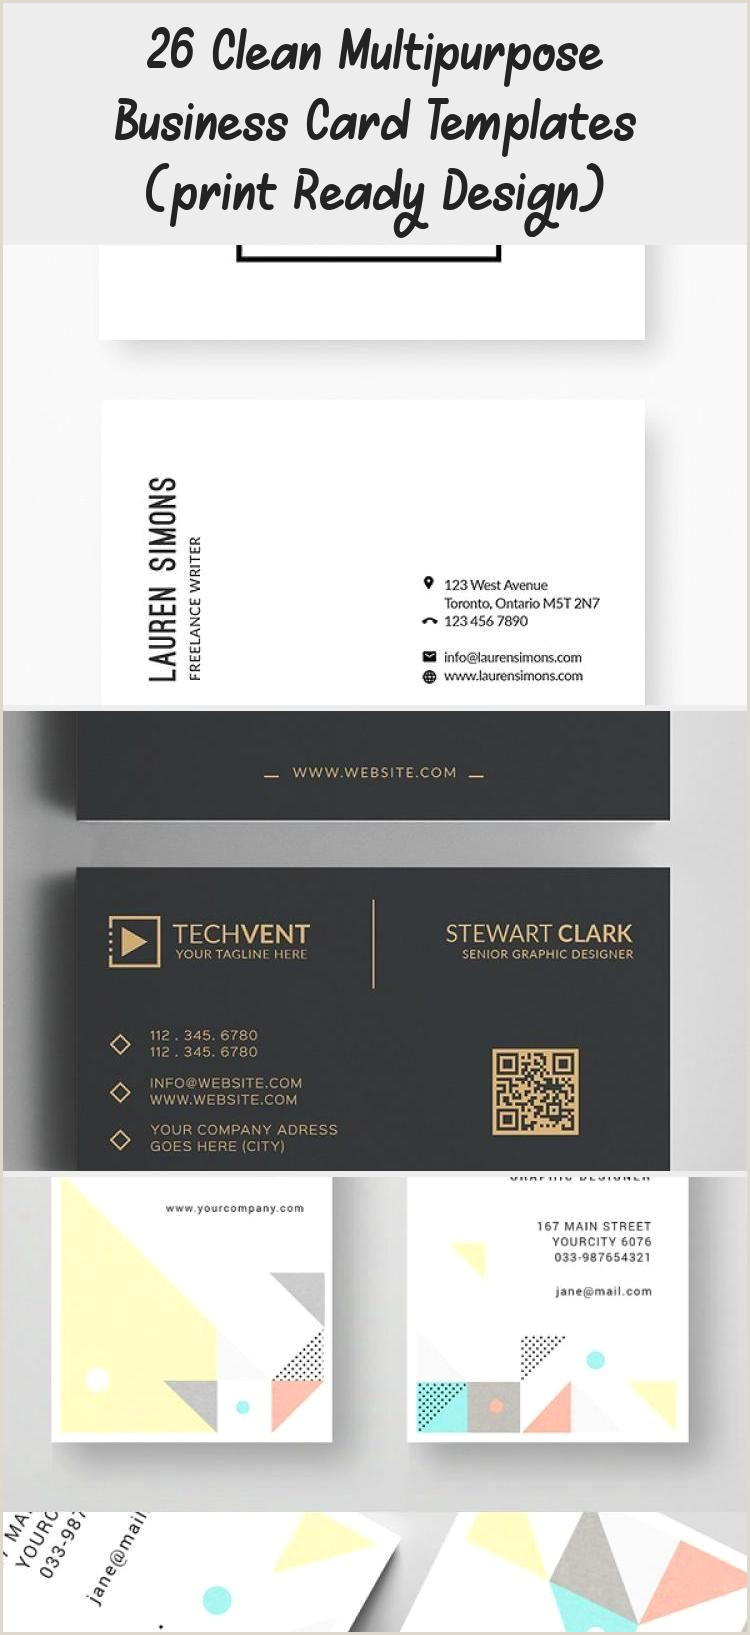 Information On Business Card 26 Clean Multipurpose Business Card Templates Print Ready